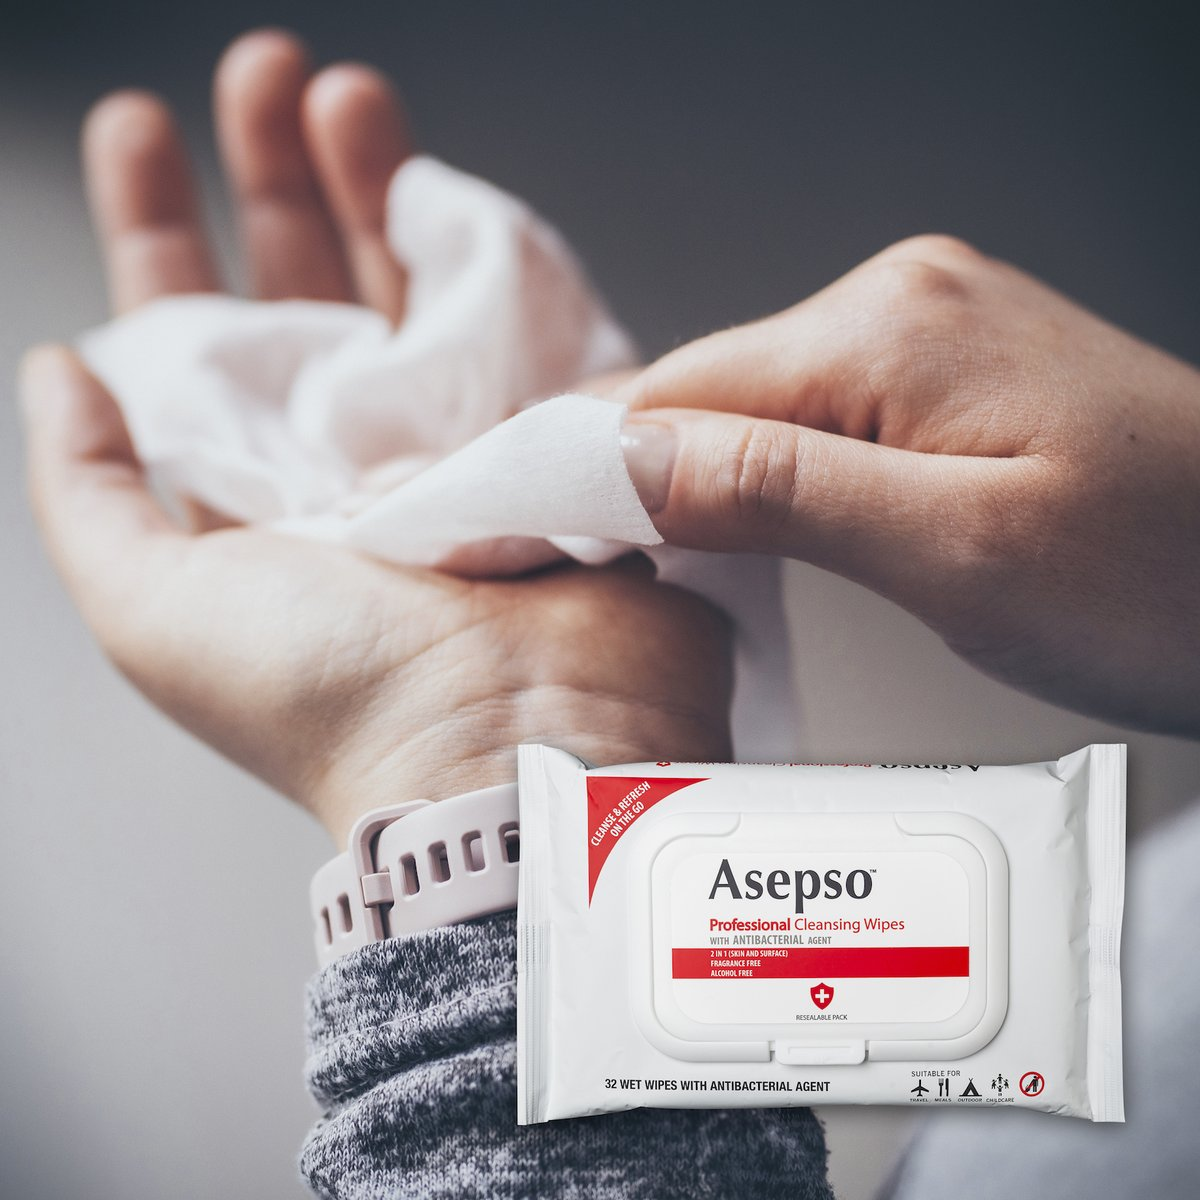 NEW #Asepso Professional Cleansing Wipes https://t.co/dMwmGcVbFT